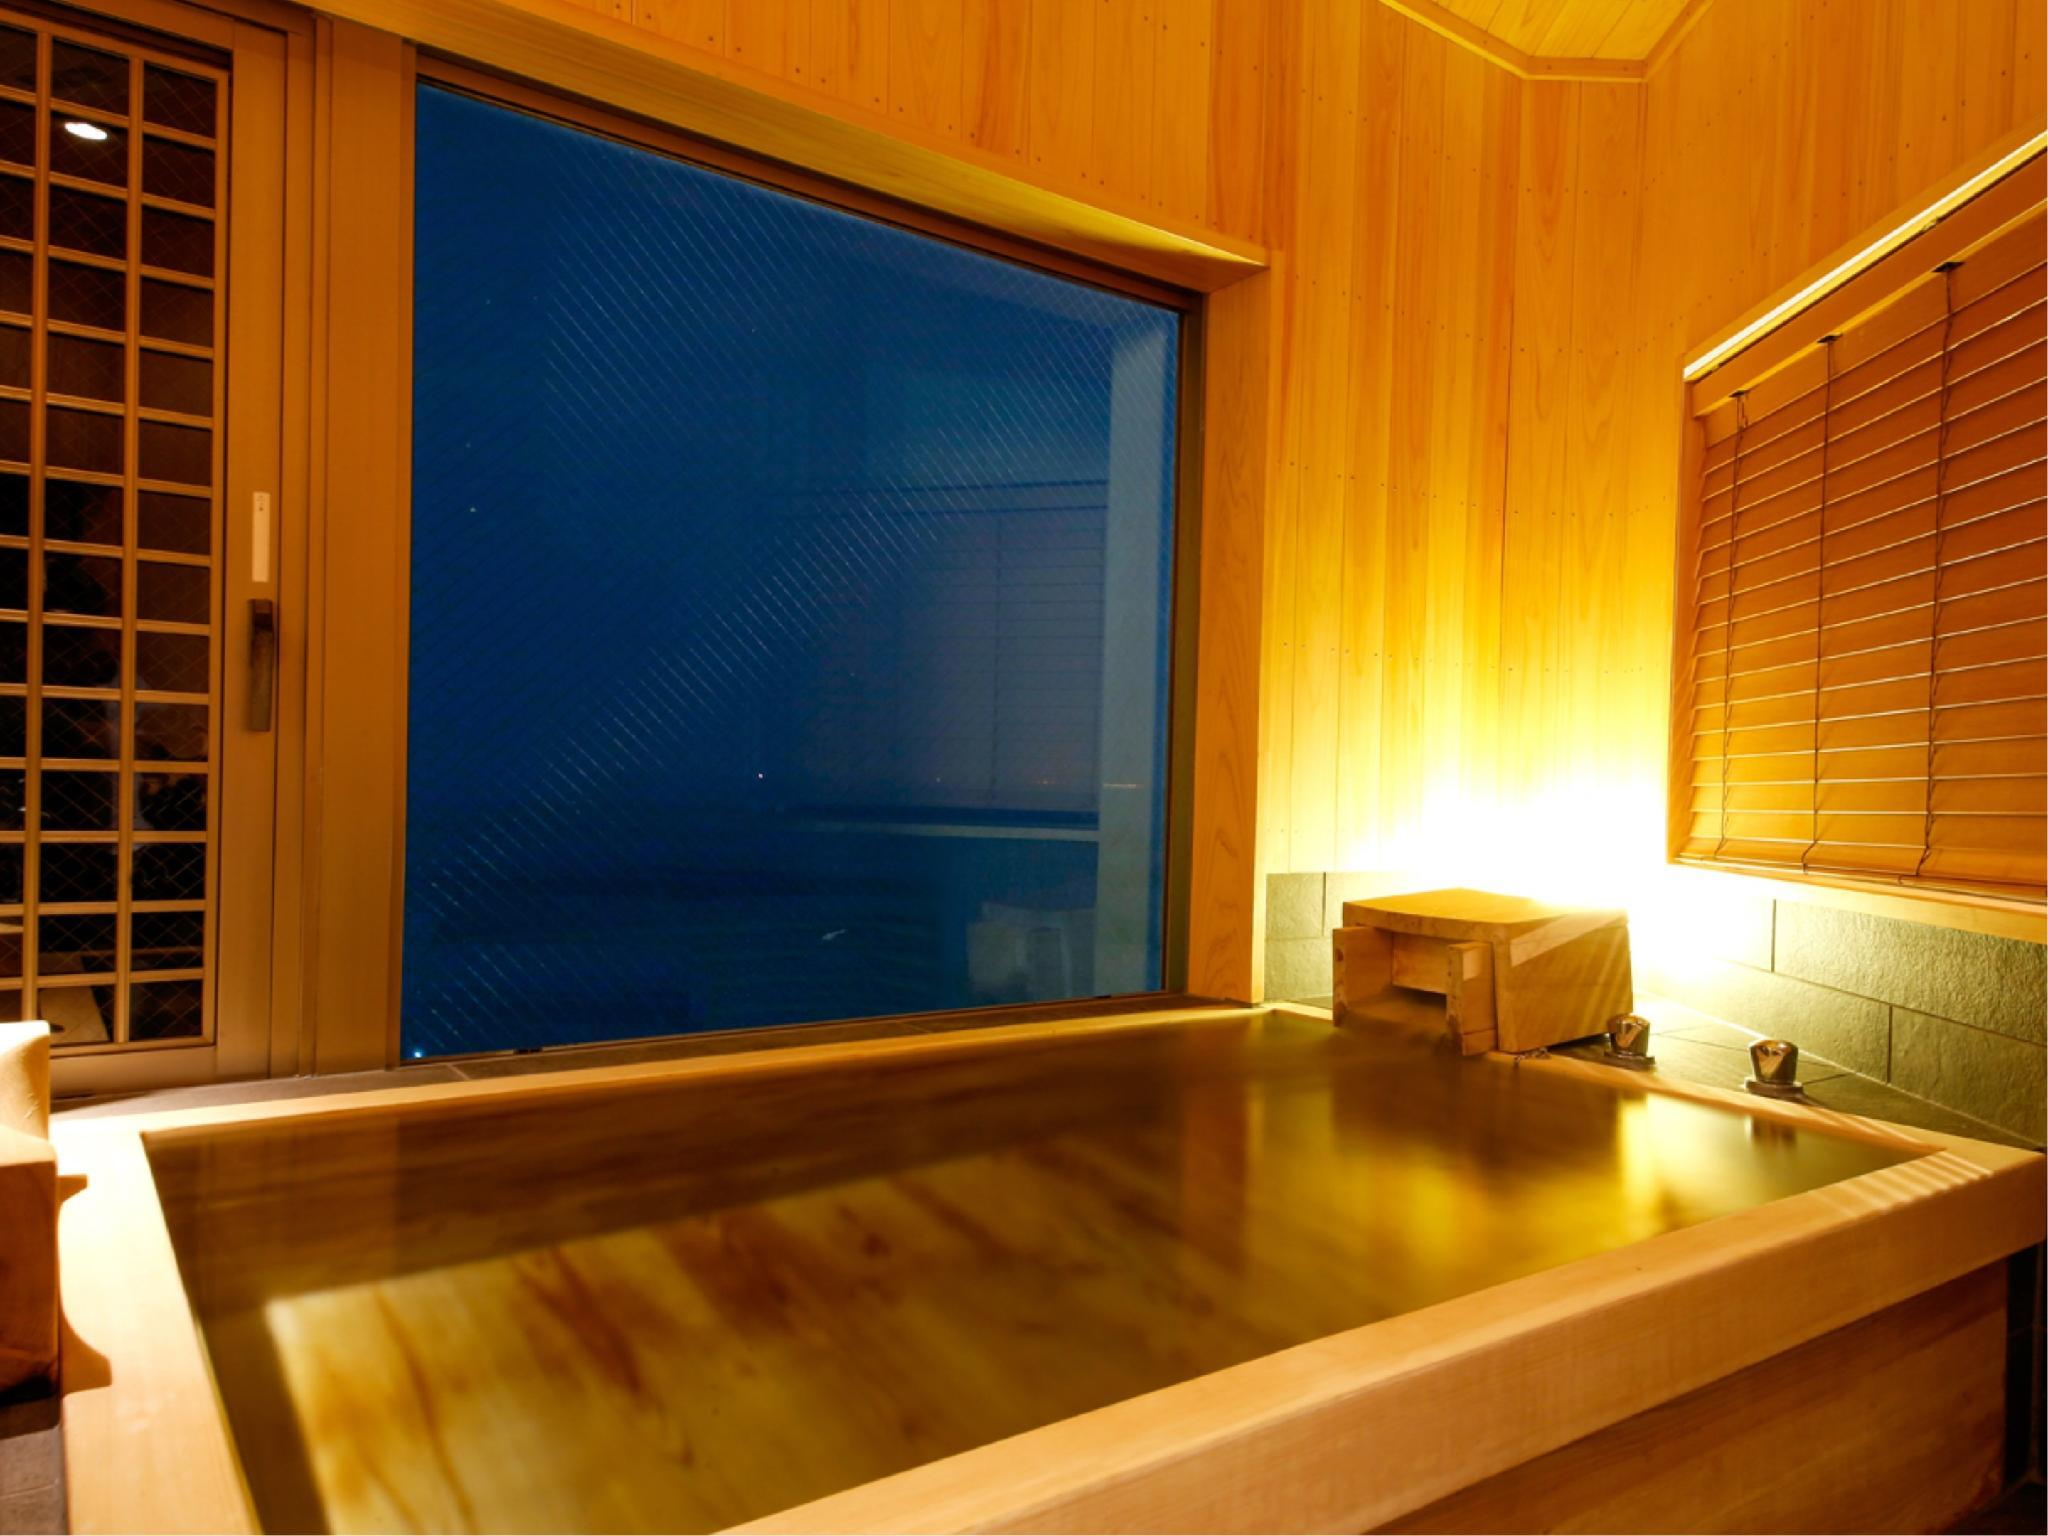 特別フロア【里楽】グランデルームA(展望檜風呂付) (Grande Room with Scenic View Cypress Bath (Type A, Special Floor Riraku))